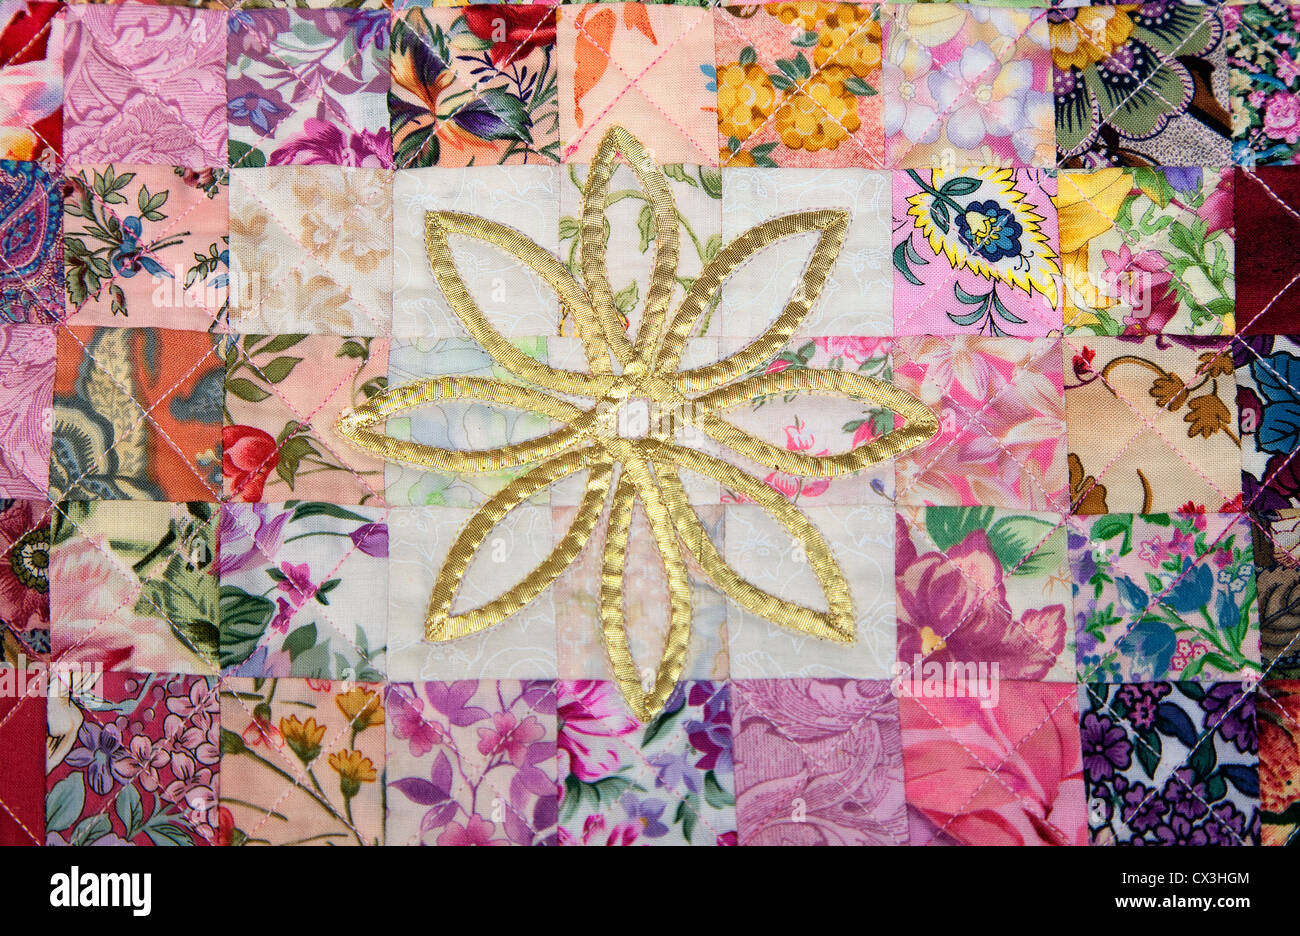 Detail of a traditional patchwork quilt. - Stock Image